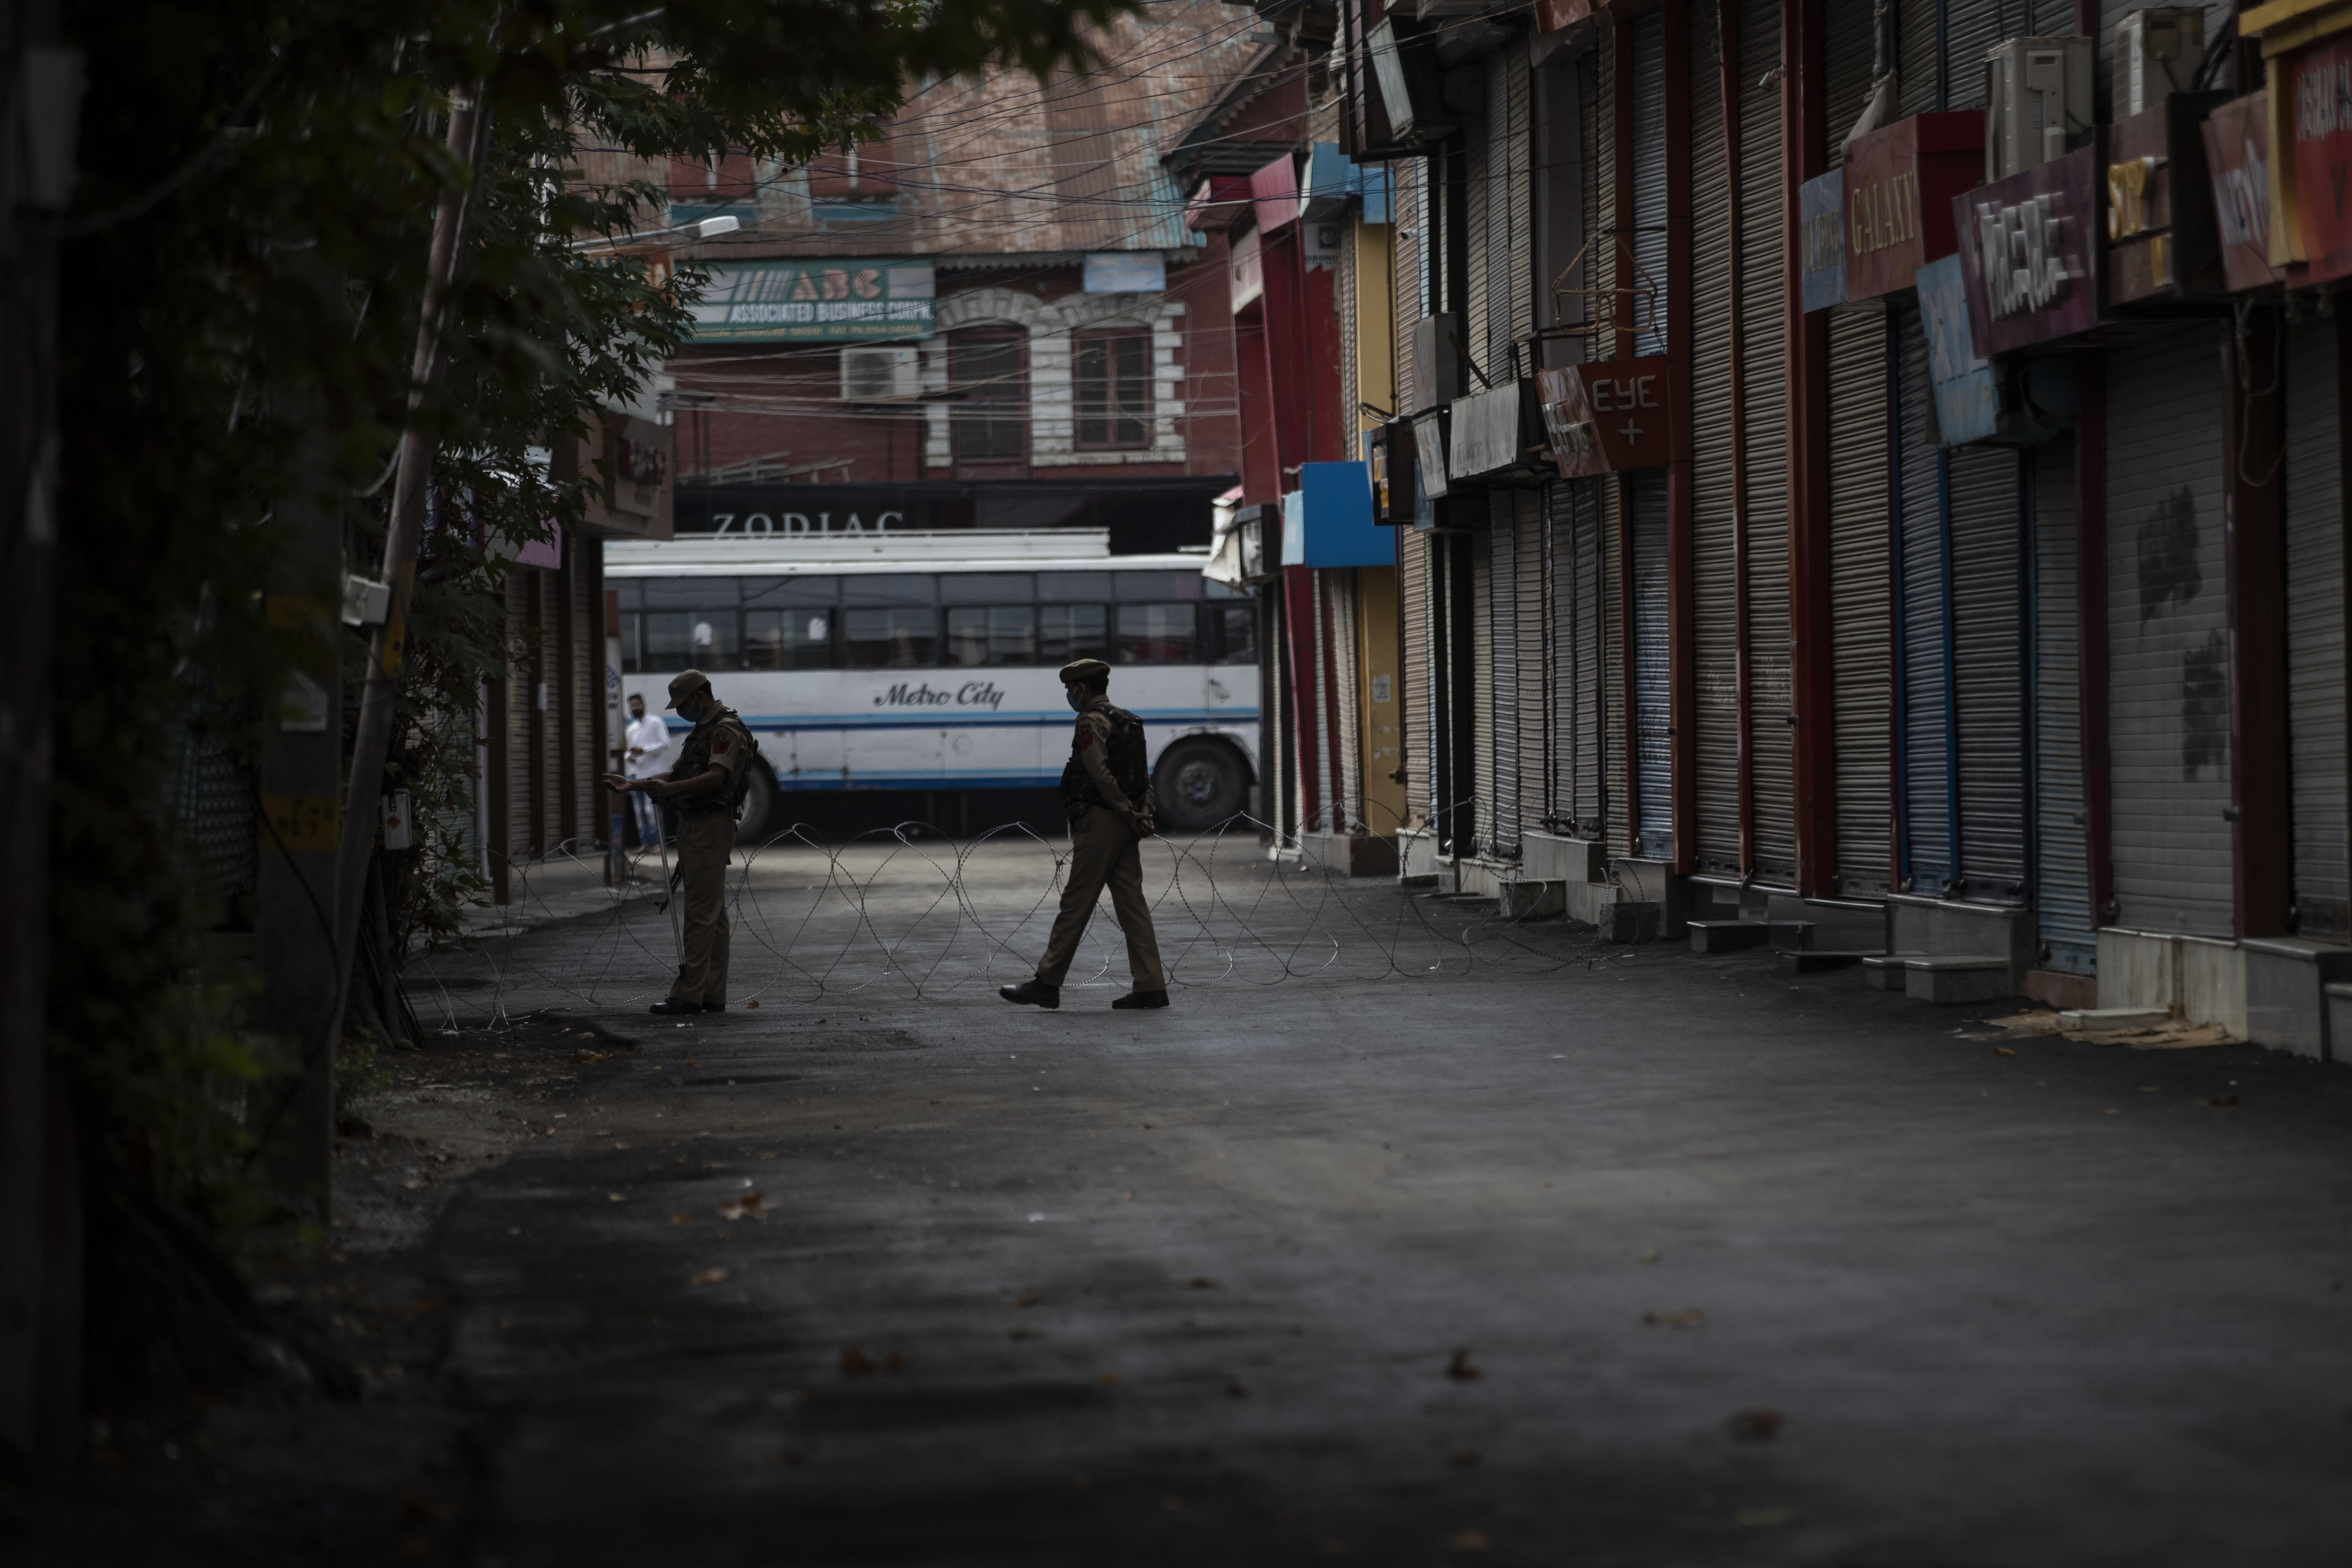 Indian paramilitary soldiers keep guard during restrictions in Srinagar, Indian controlled Kashmir, Friday, Aug. 28, 2020. Police and paramilitary soldiers on Friday detained dozens of Muslims participating in religious processions in the Indian portion of Kashmir. Authorities had imposed restrictions in parts of Srinagar, the region's main city, to prevent gatherings marking Muharram from developing into anti-India protests. (AP Photo/Mukhtar Khan)